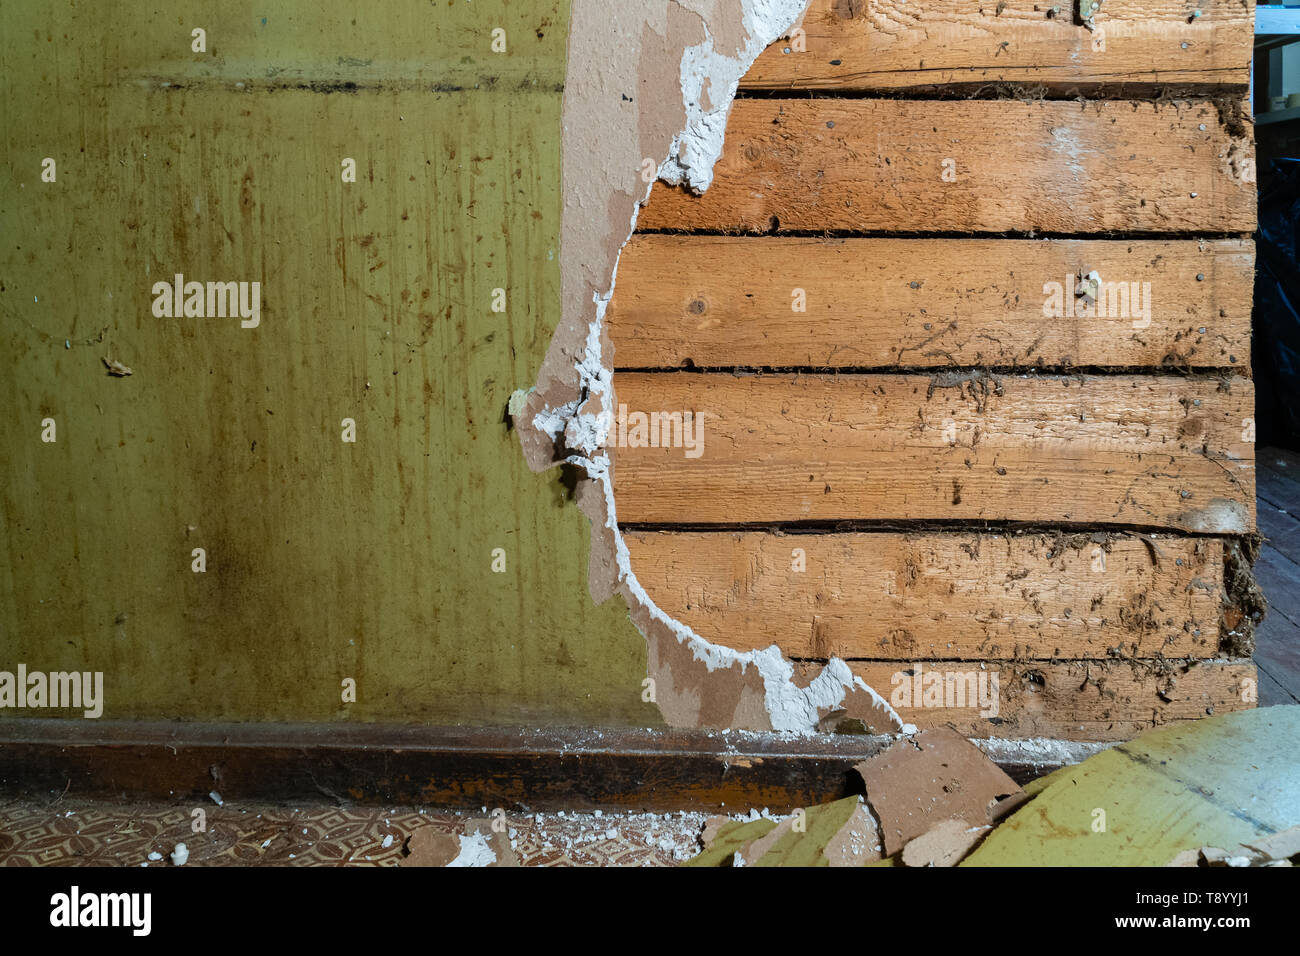 Old plasterboard wall being demolished with wooden boards behind - Stock Image